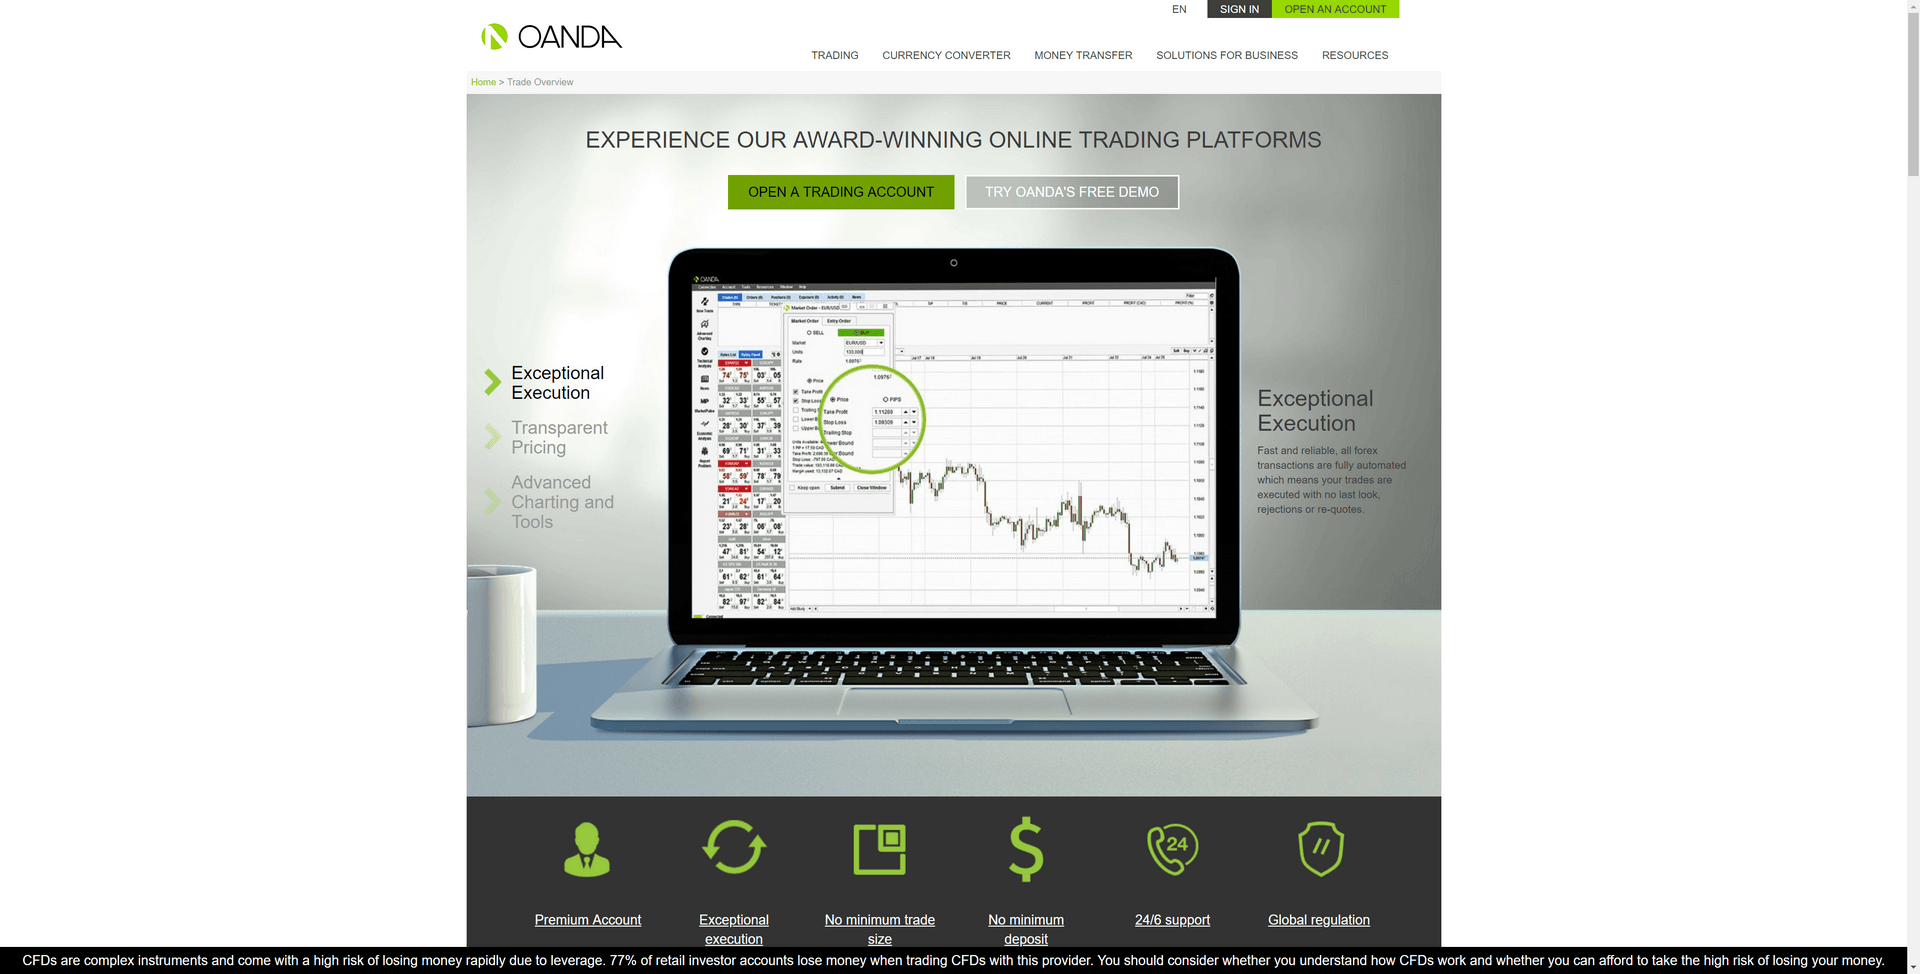 OANDA Screenshot